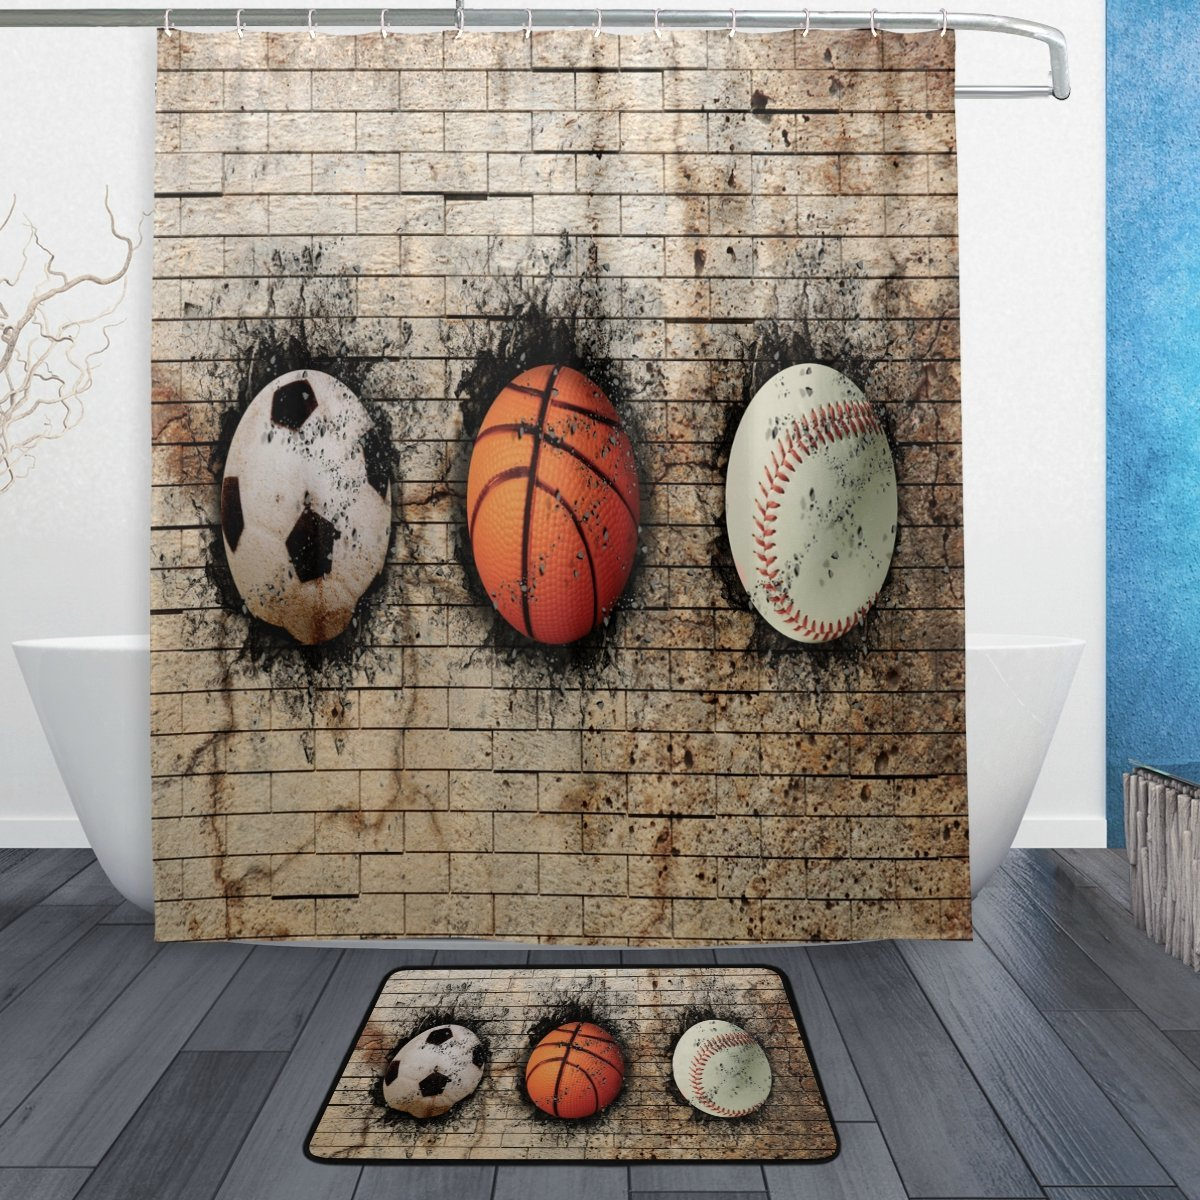 Soccer Basketball Baseball into Wall Waterproof Polyester Fabric Shower Curtain with Hooks Doormat Bath Floor Mat Bathroom Home